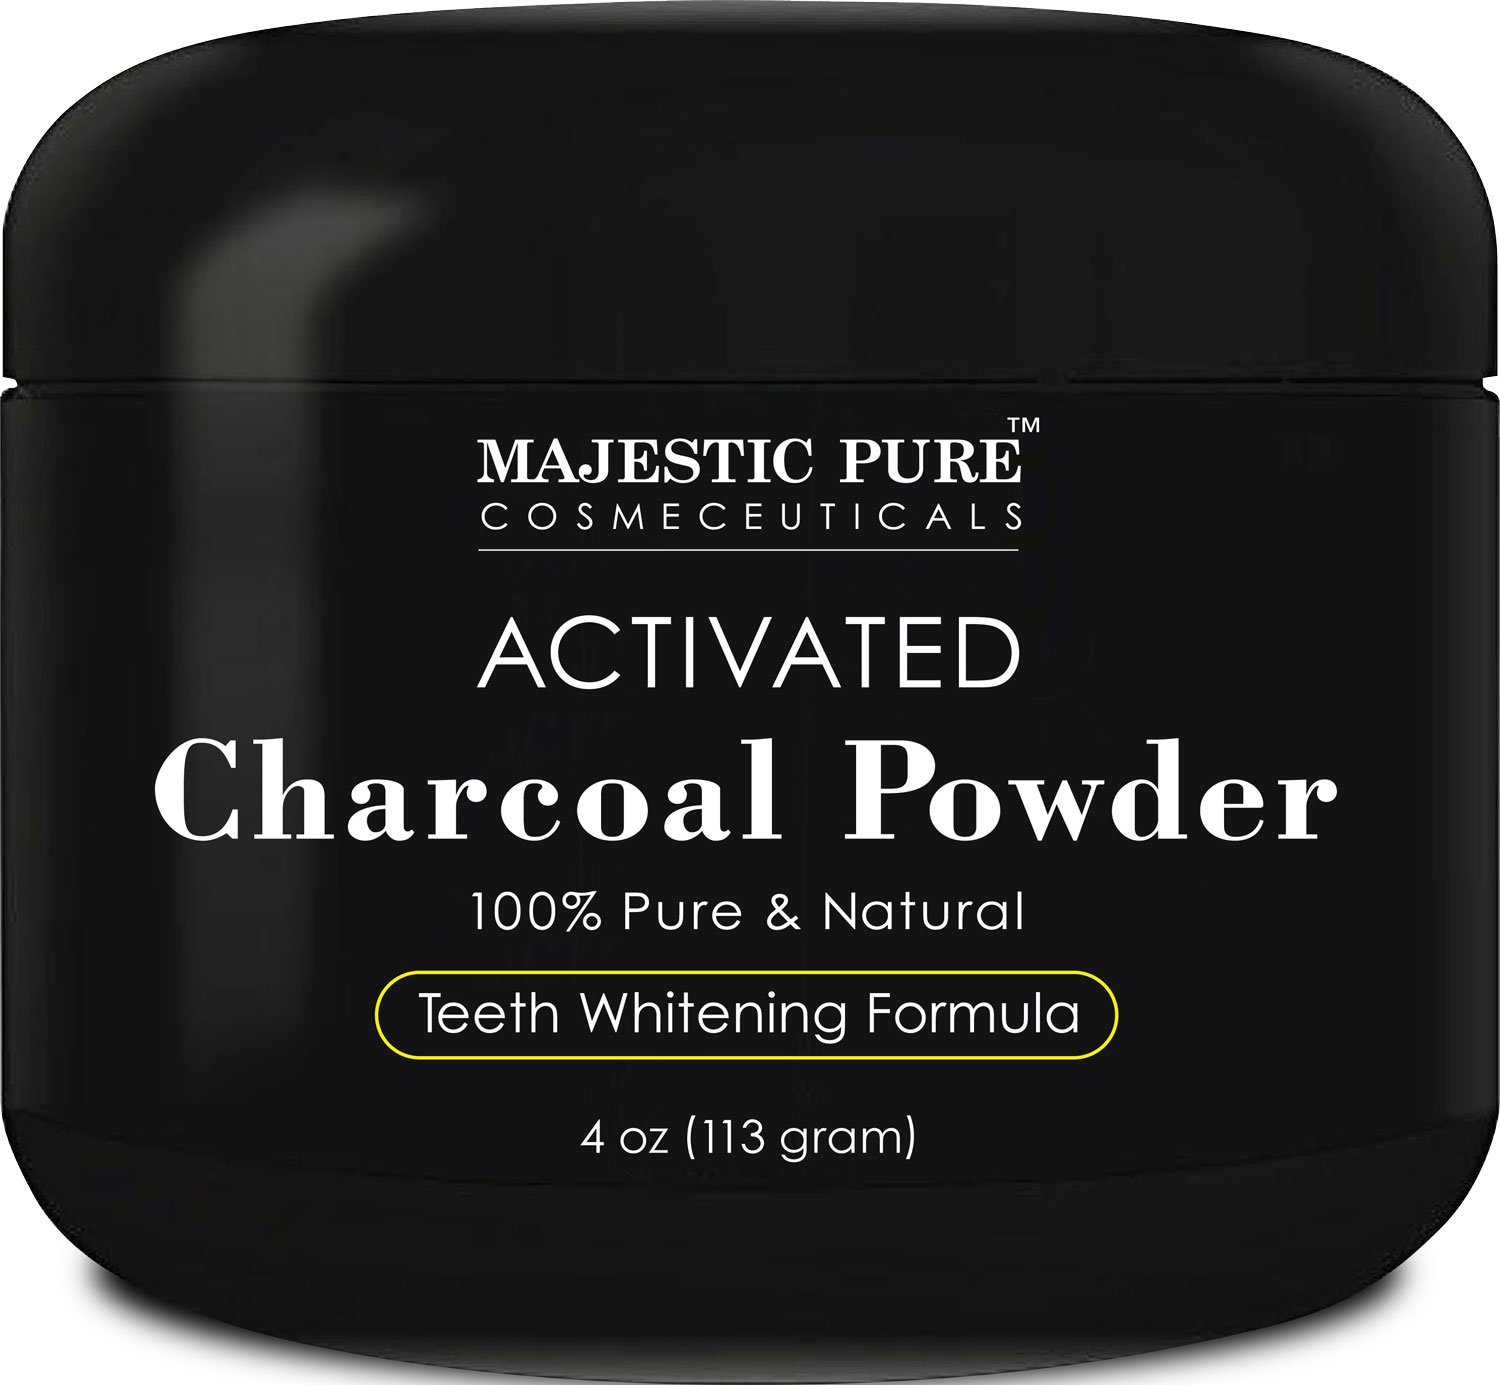 Teeth Whitening Charcoal by Majestic Pure | Natural Charcoal Teeth Whitening with Coconut Activated Charcoal, Non Abrasive, 4 oz